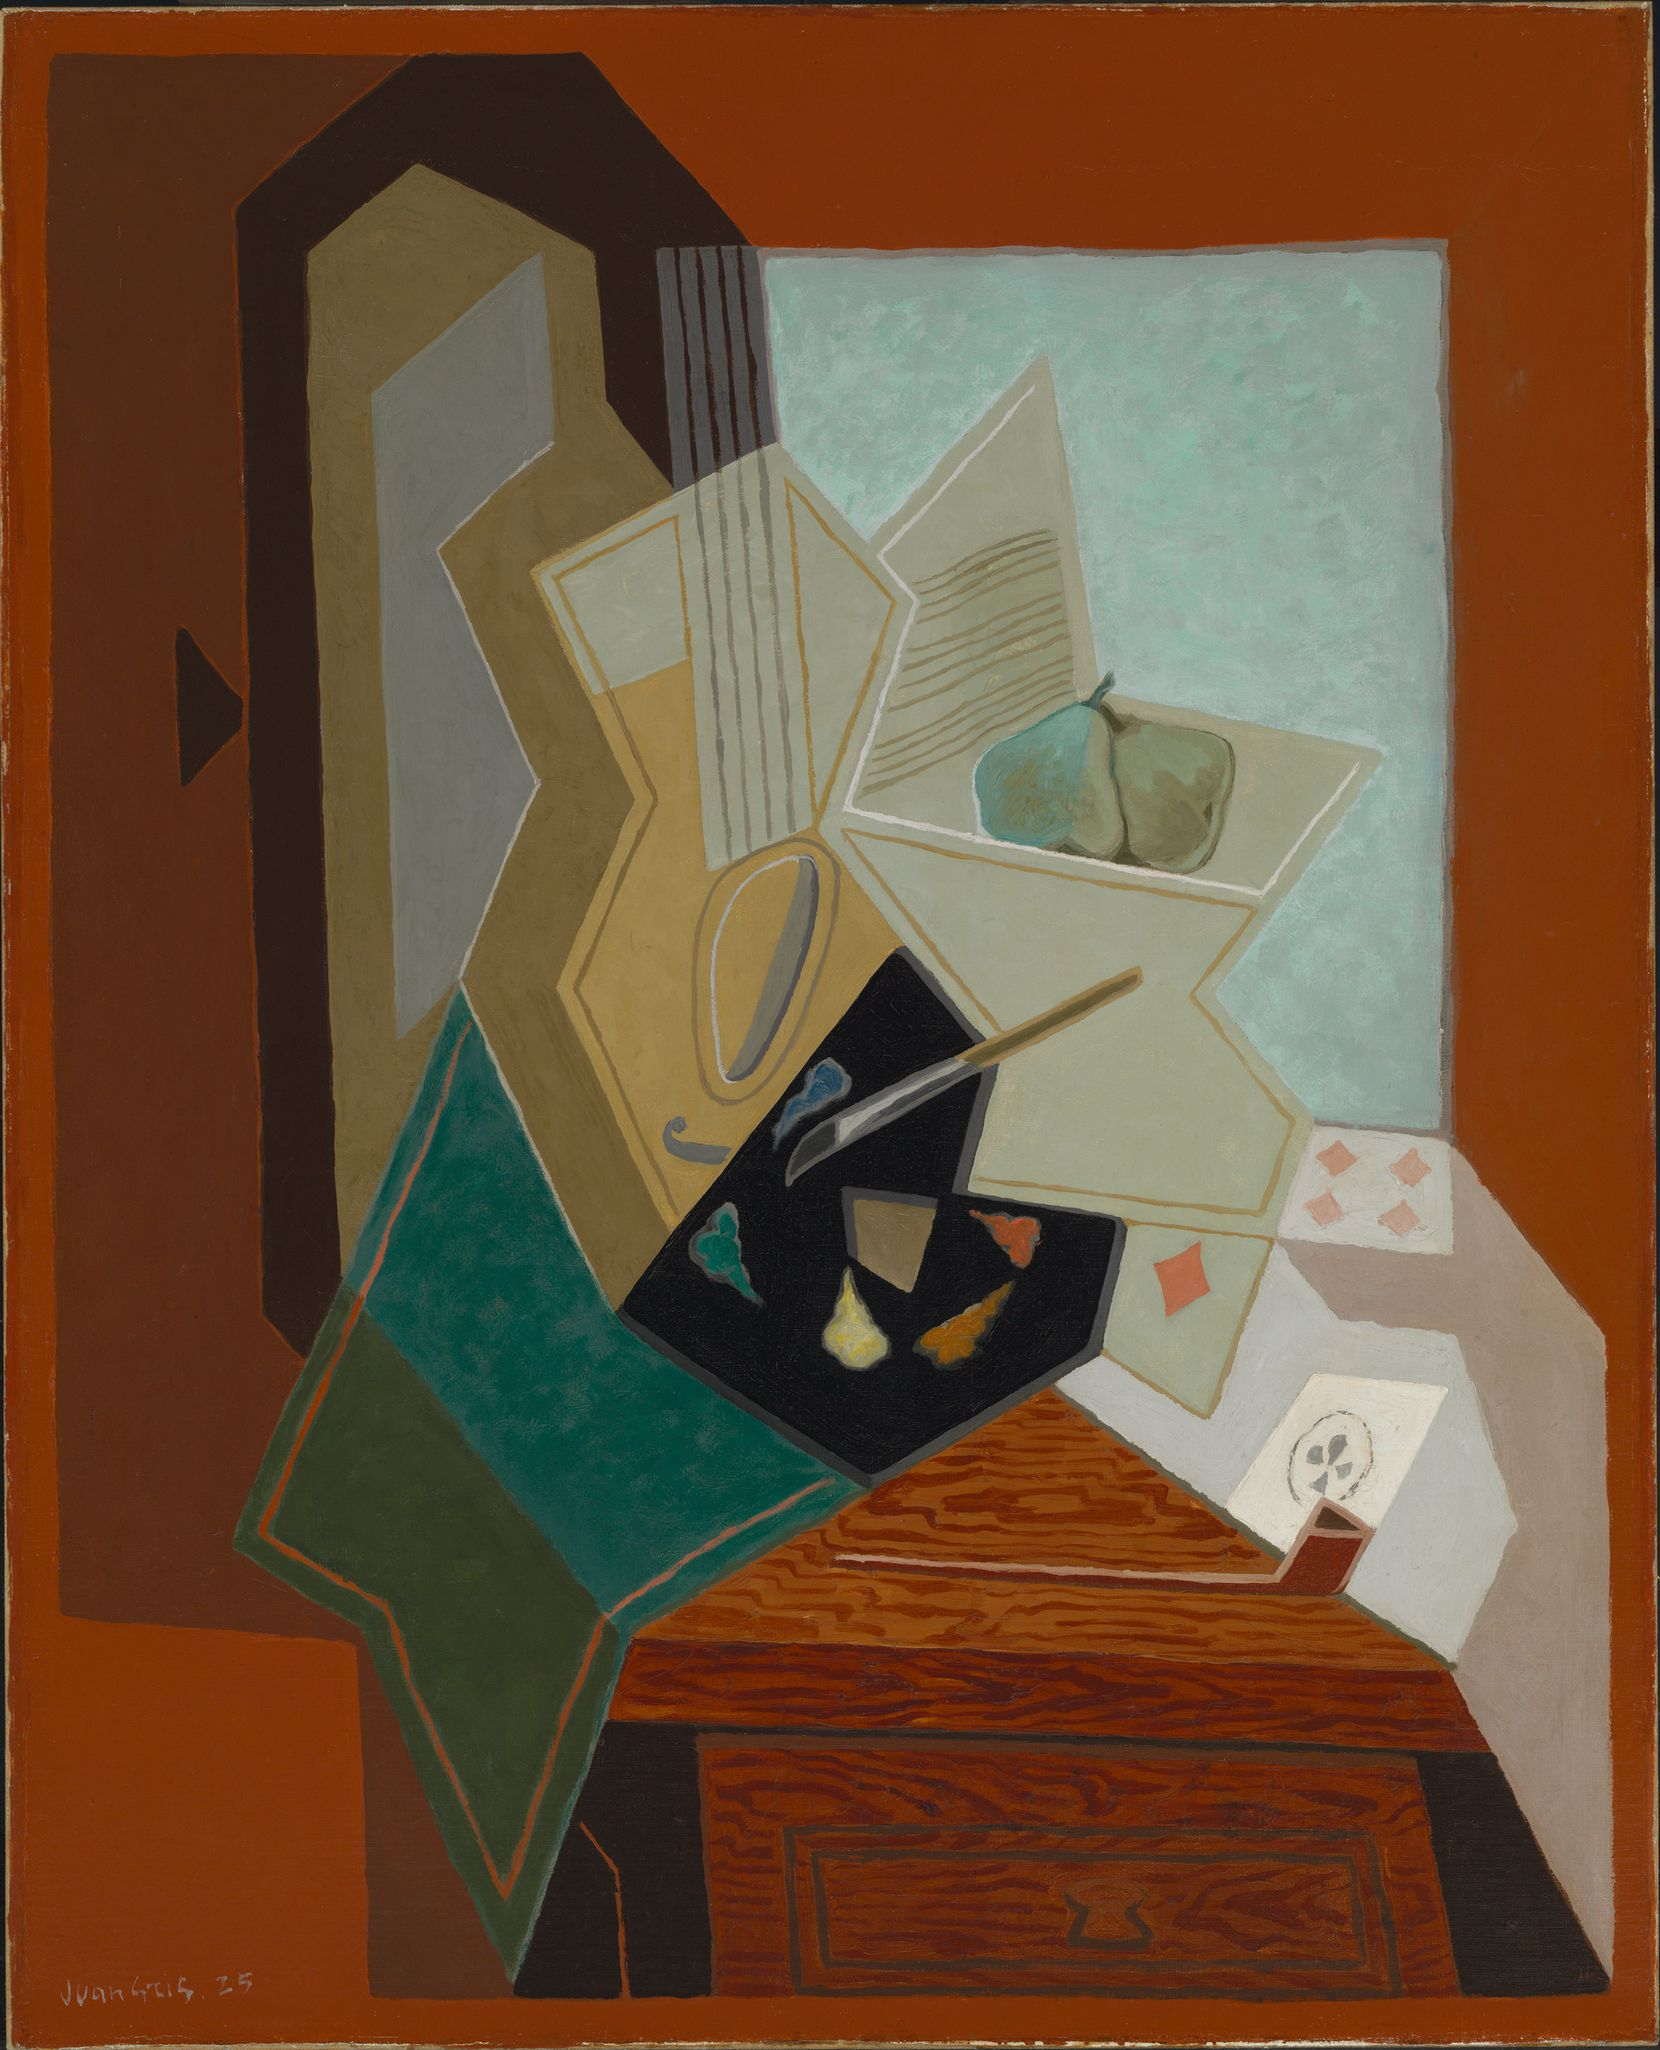 """In later works like the 1925 painting """"The Painter's Window,"""" Juan Gris would often reference himself as an artist by including palettes and paintbrushes."""